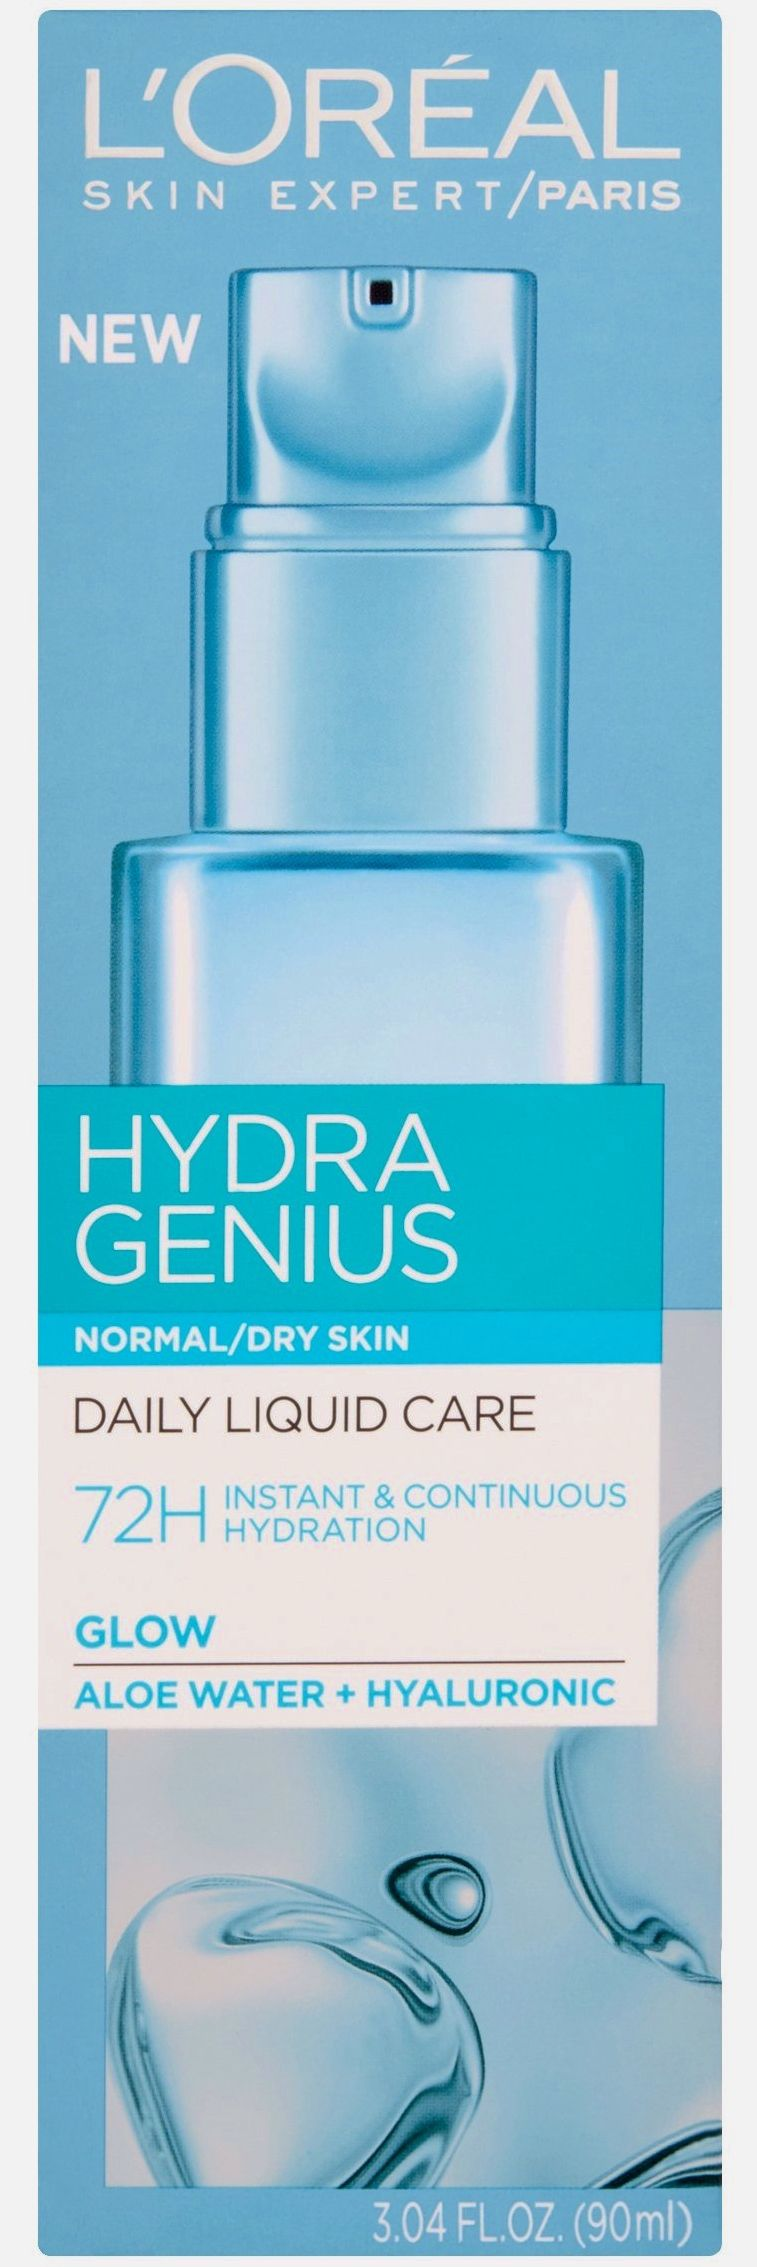 L Oreal Paris Hydra Genius Daily Liquid Care For Normal To Dry Skin 3 04 Fl Oz Walmart Com Lotion For Dry Skin Moisturizer For Dry Skin Gel Face Moisturizer